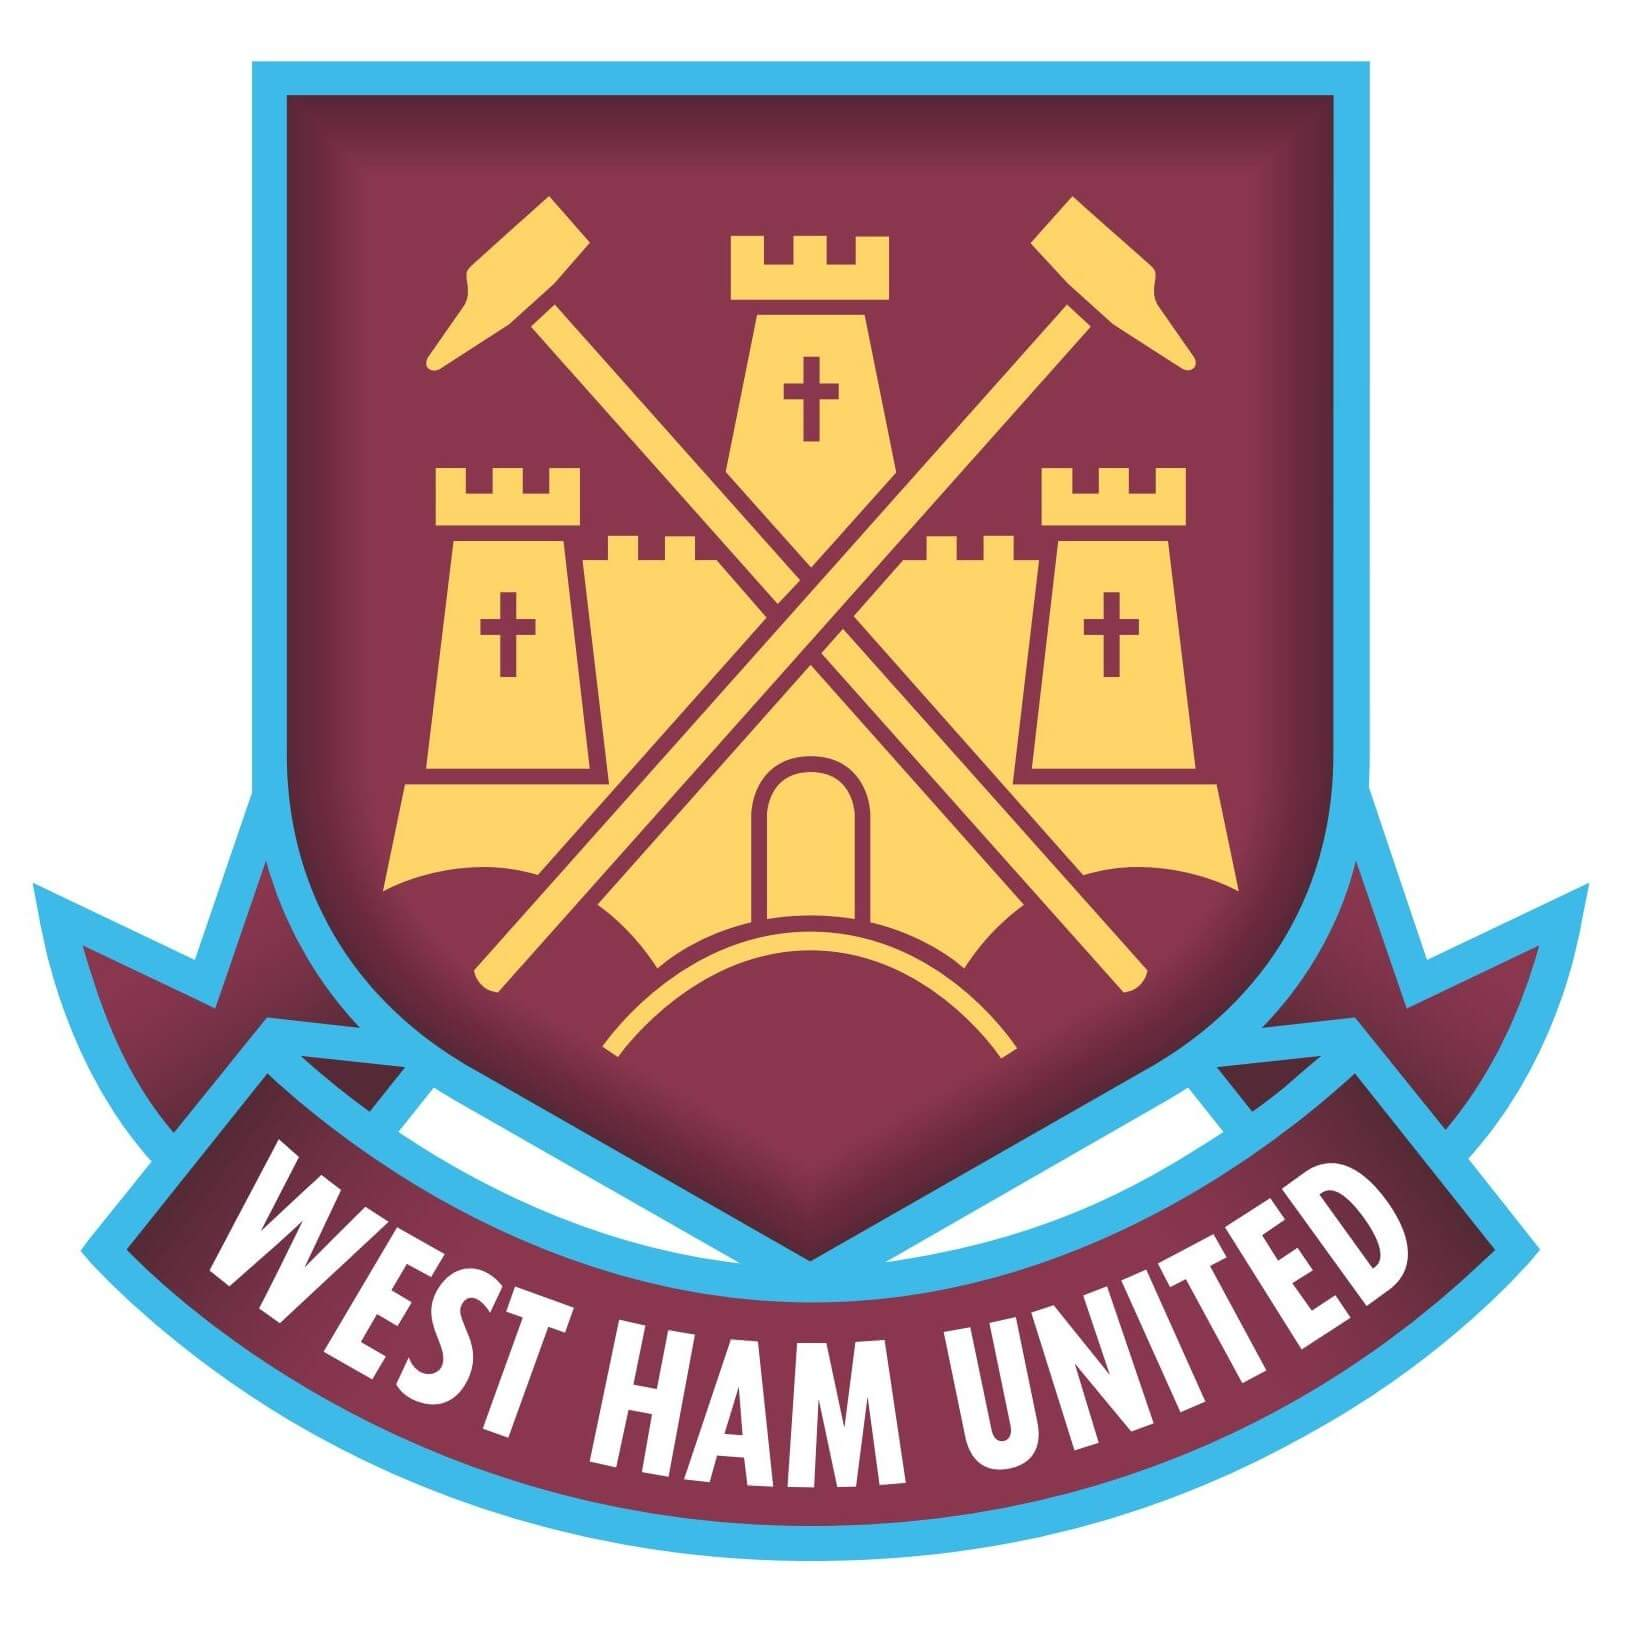 West Ham United Football Club Logo [whufc.com] png